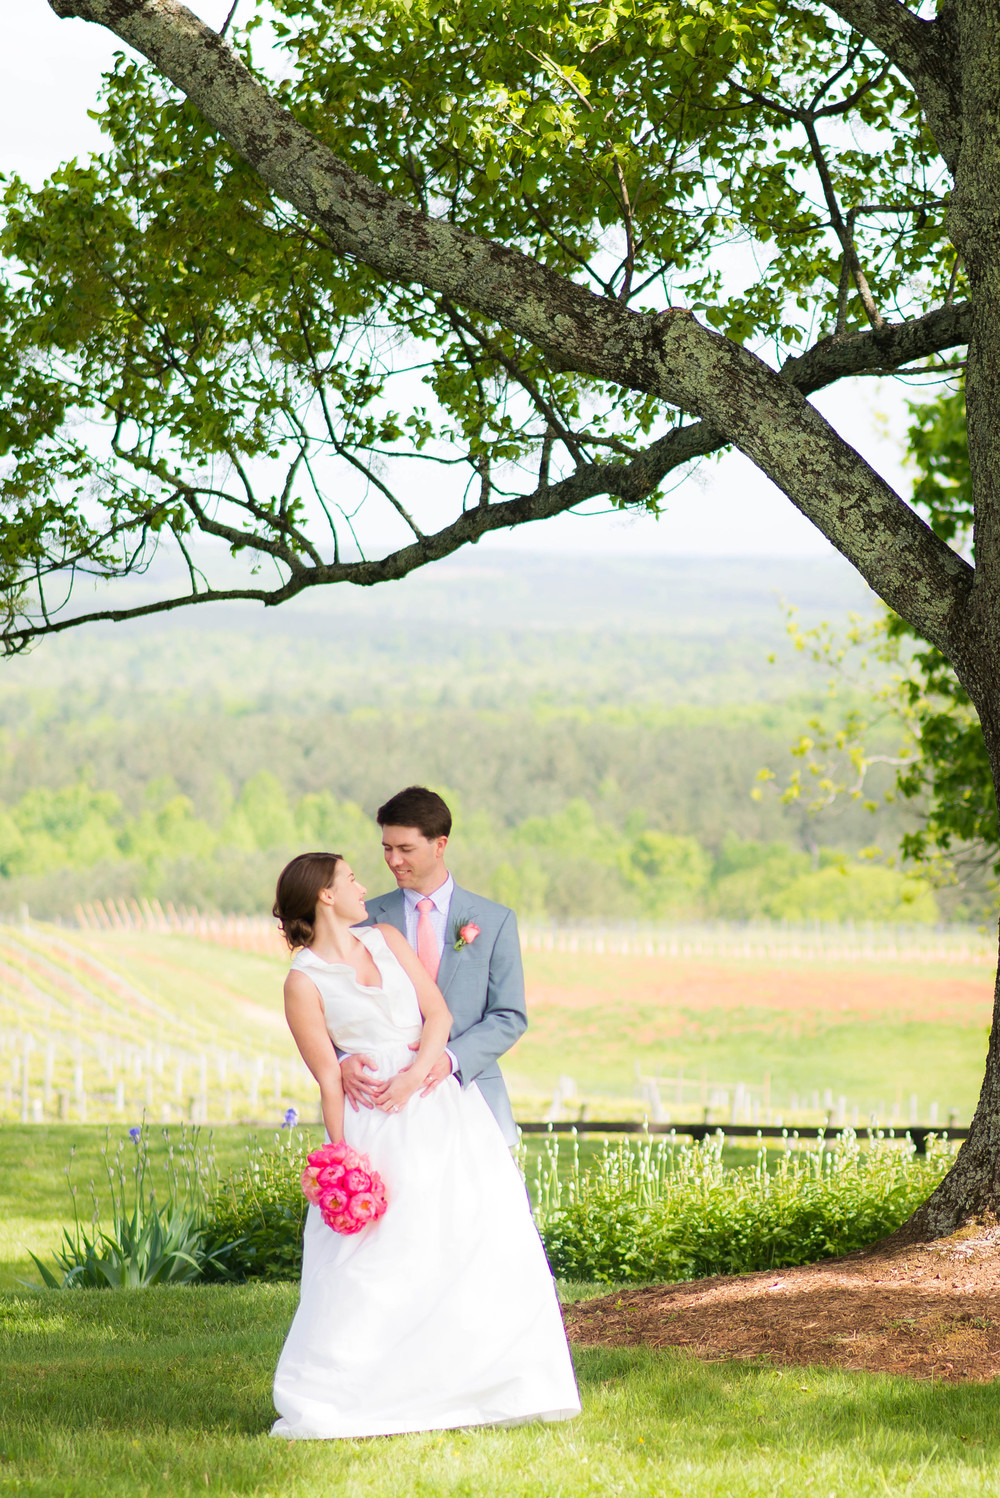 Jennifer + Sean _ Married320 copy.jpg